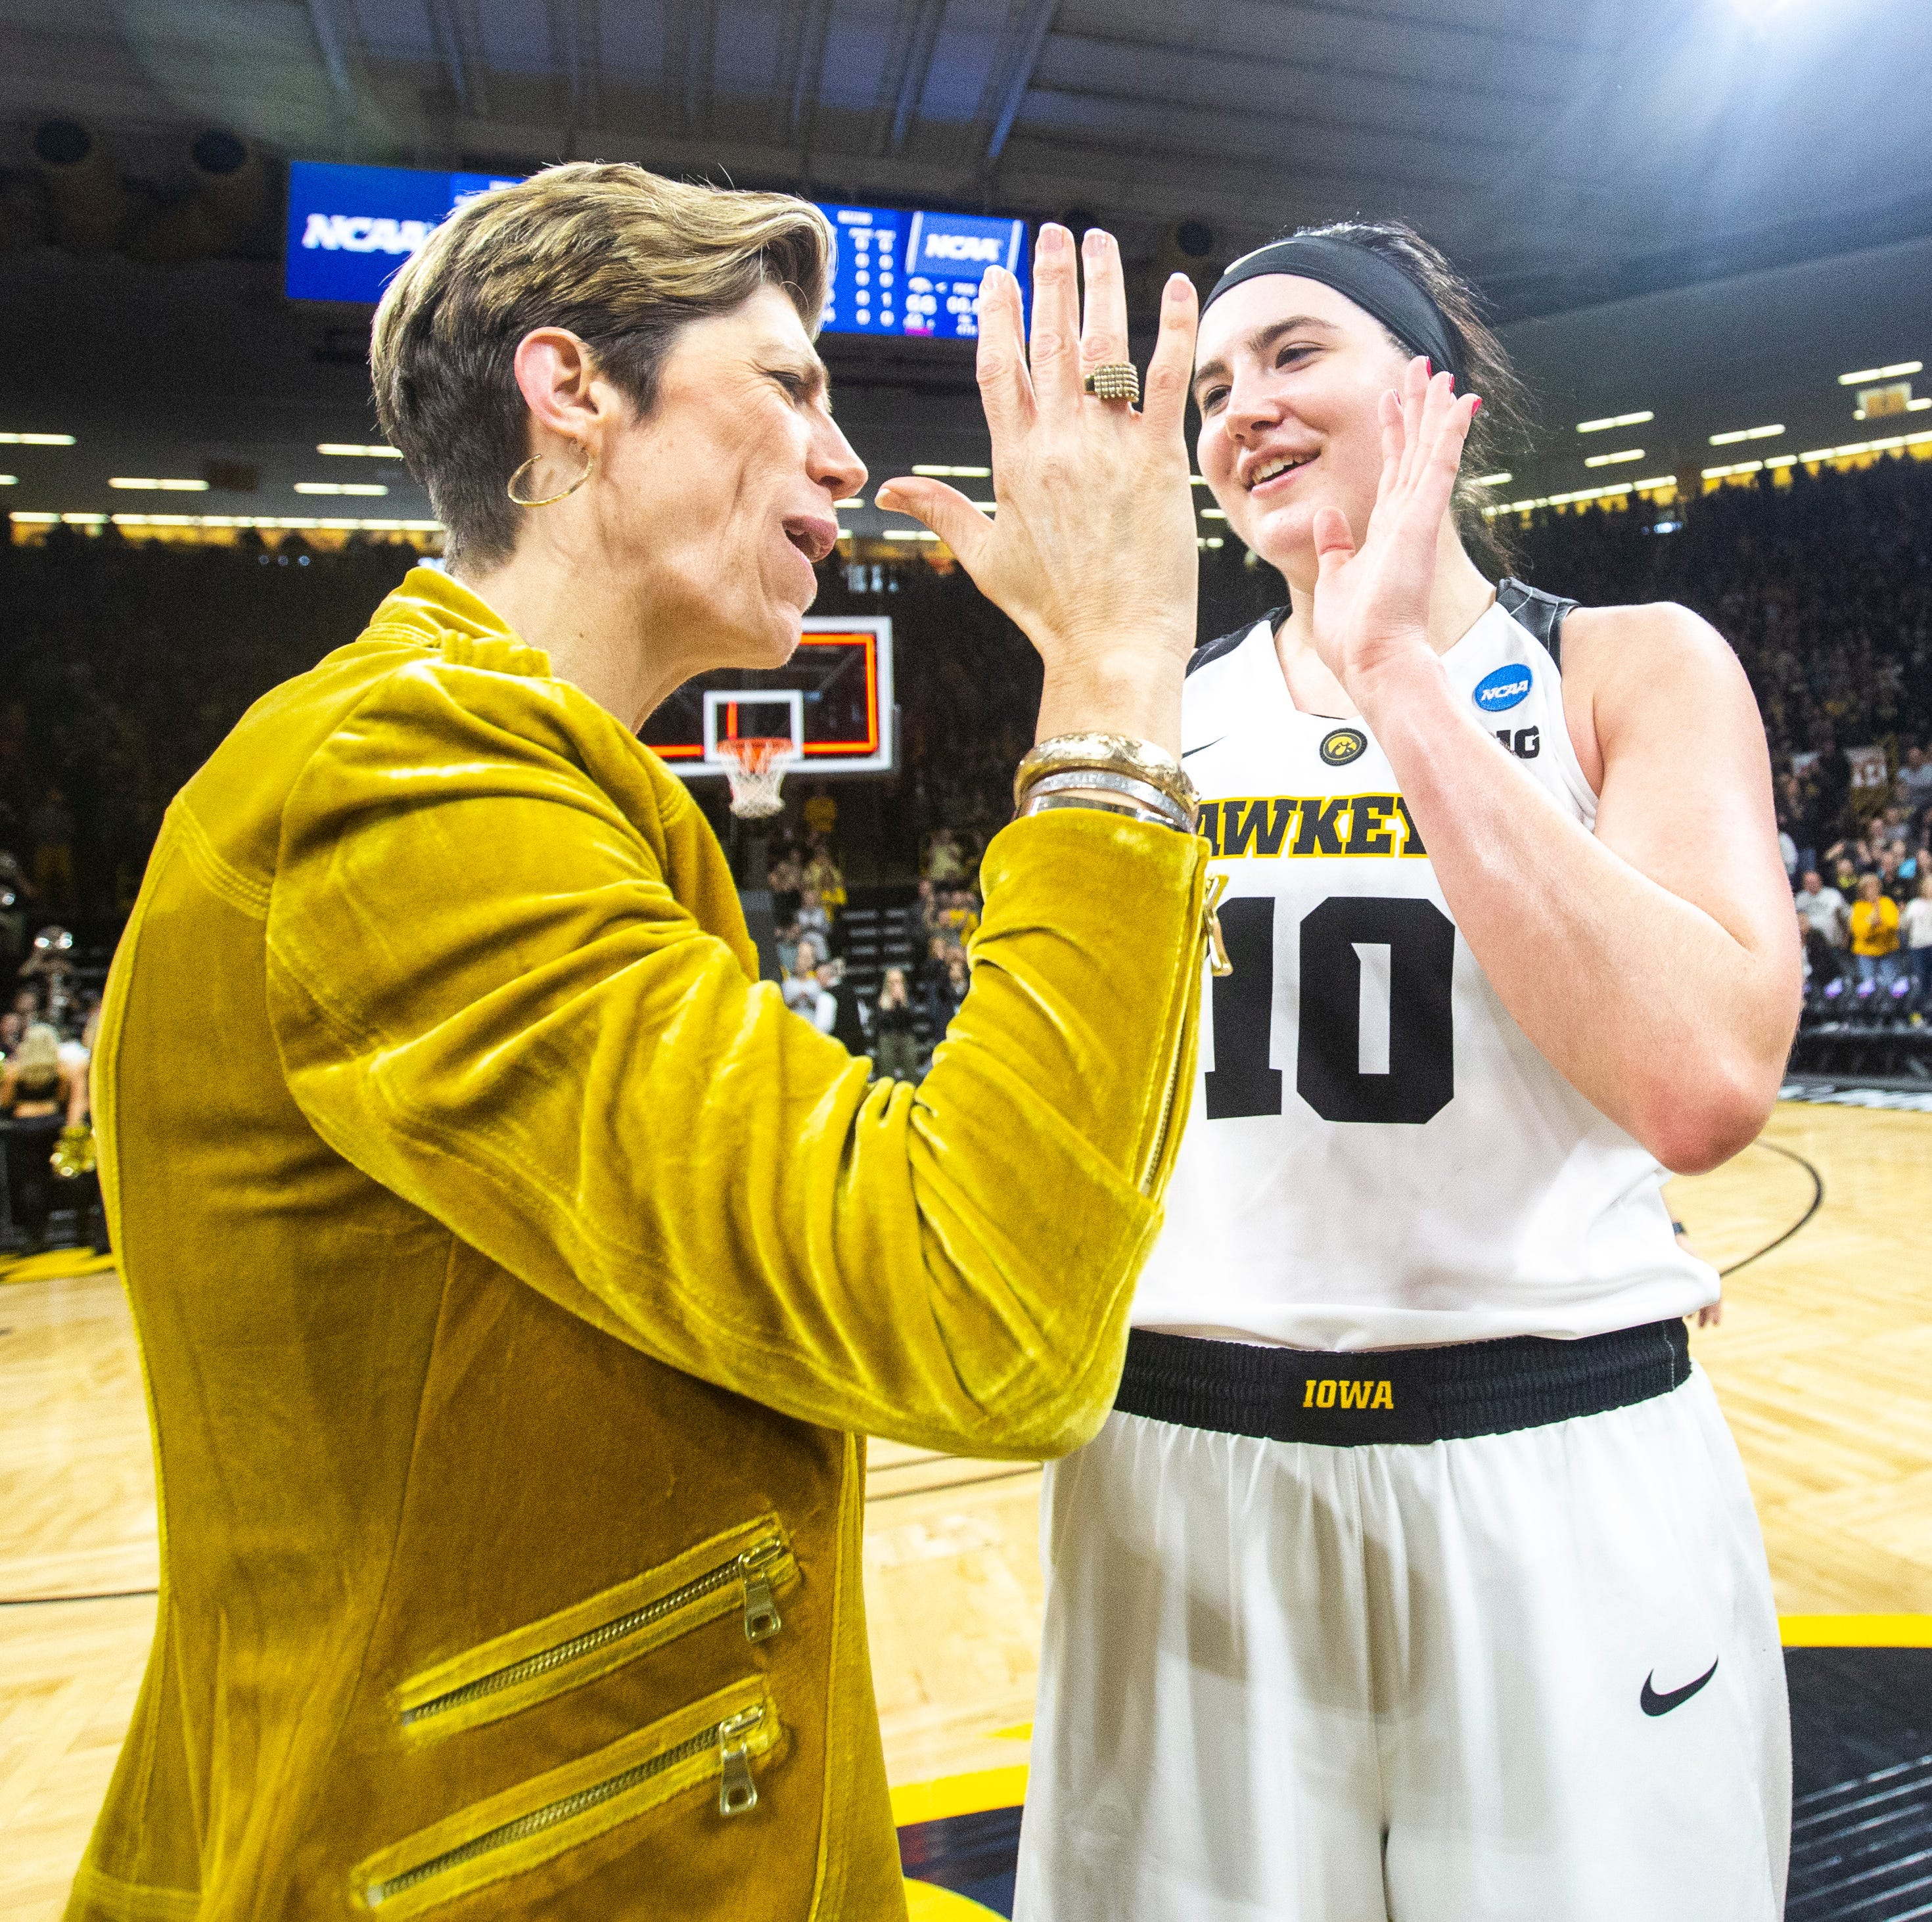 The awards keep coming for Iowa's Megan Gustafson: She's the AP player of the year